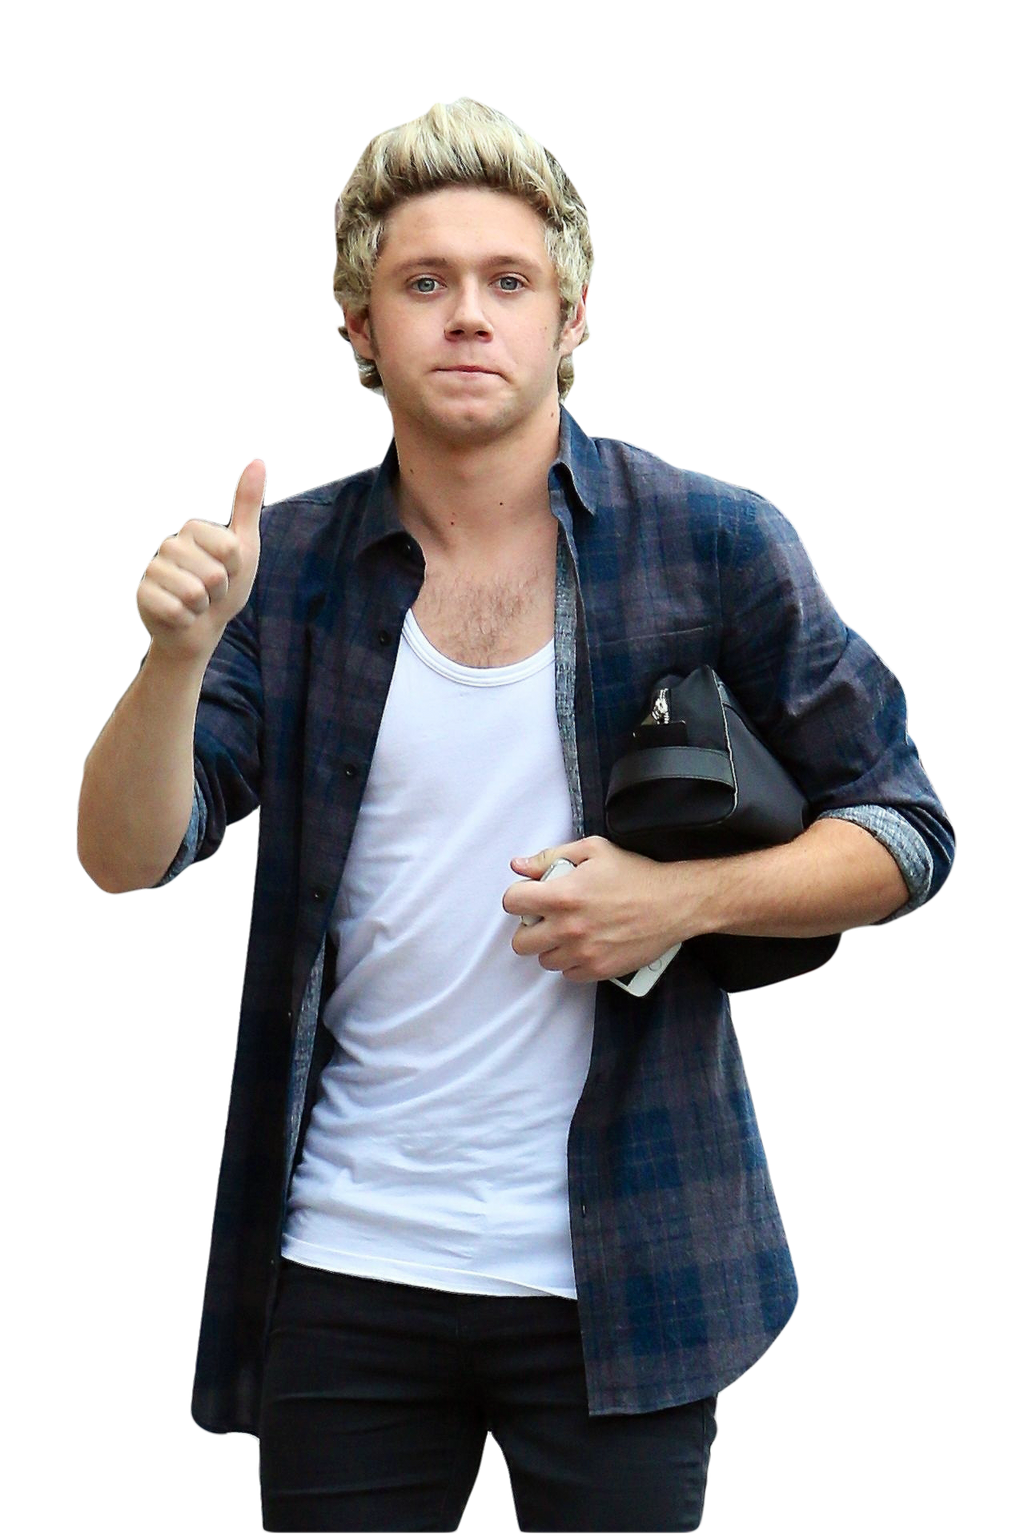 Niall Horan Png by Kosmos52 on DeviantArt